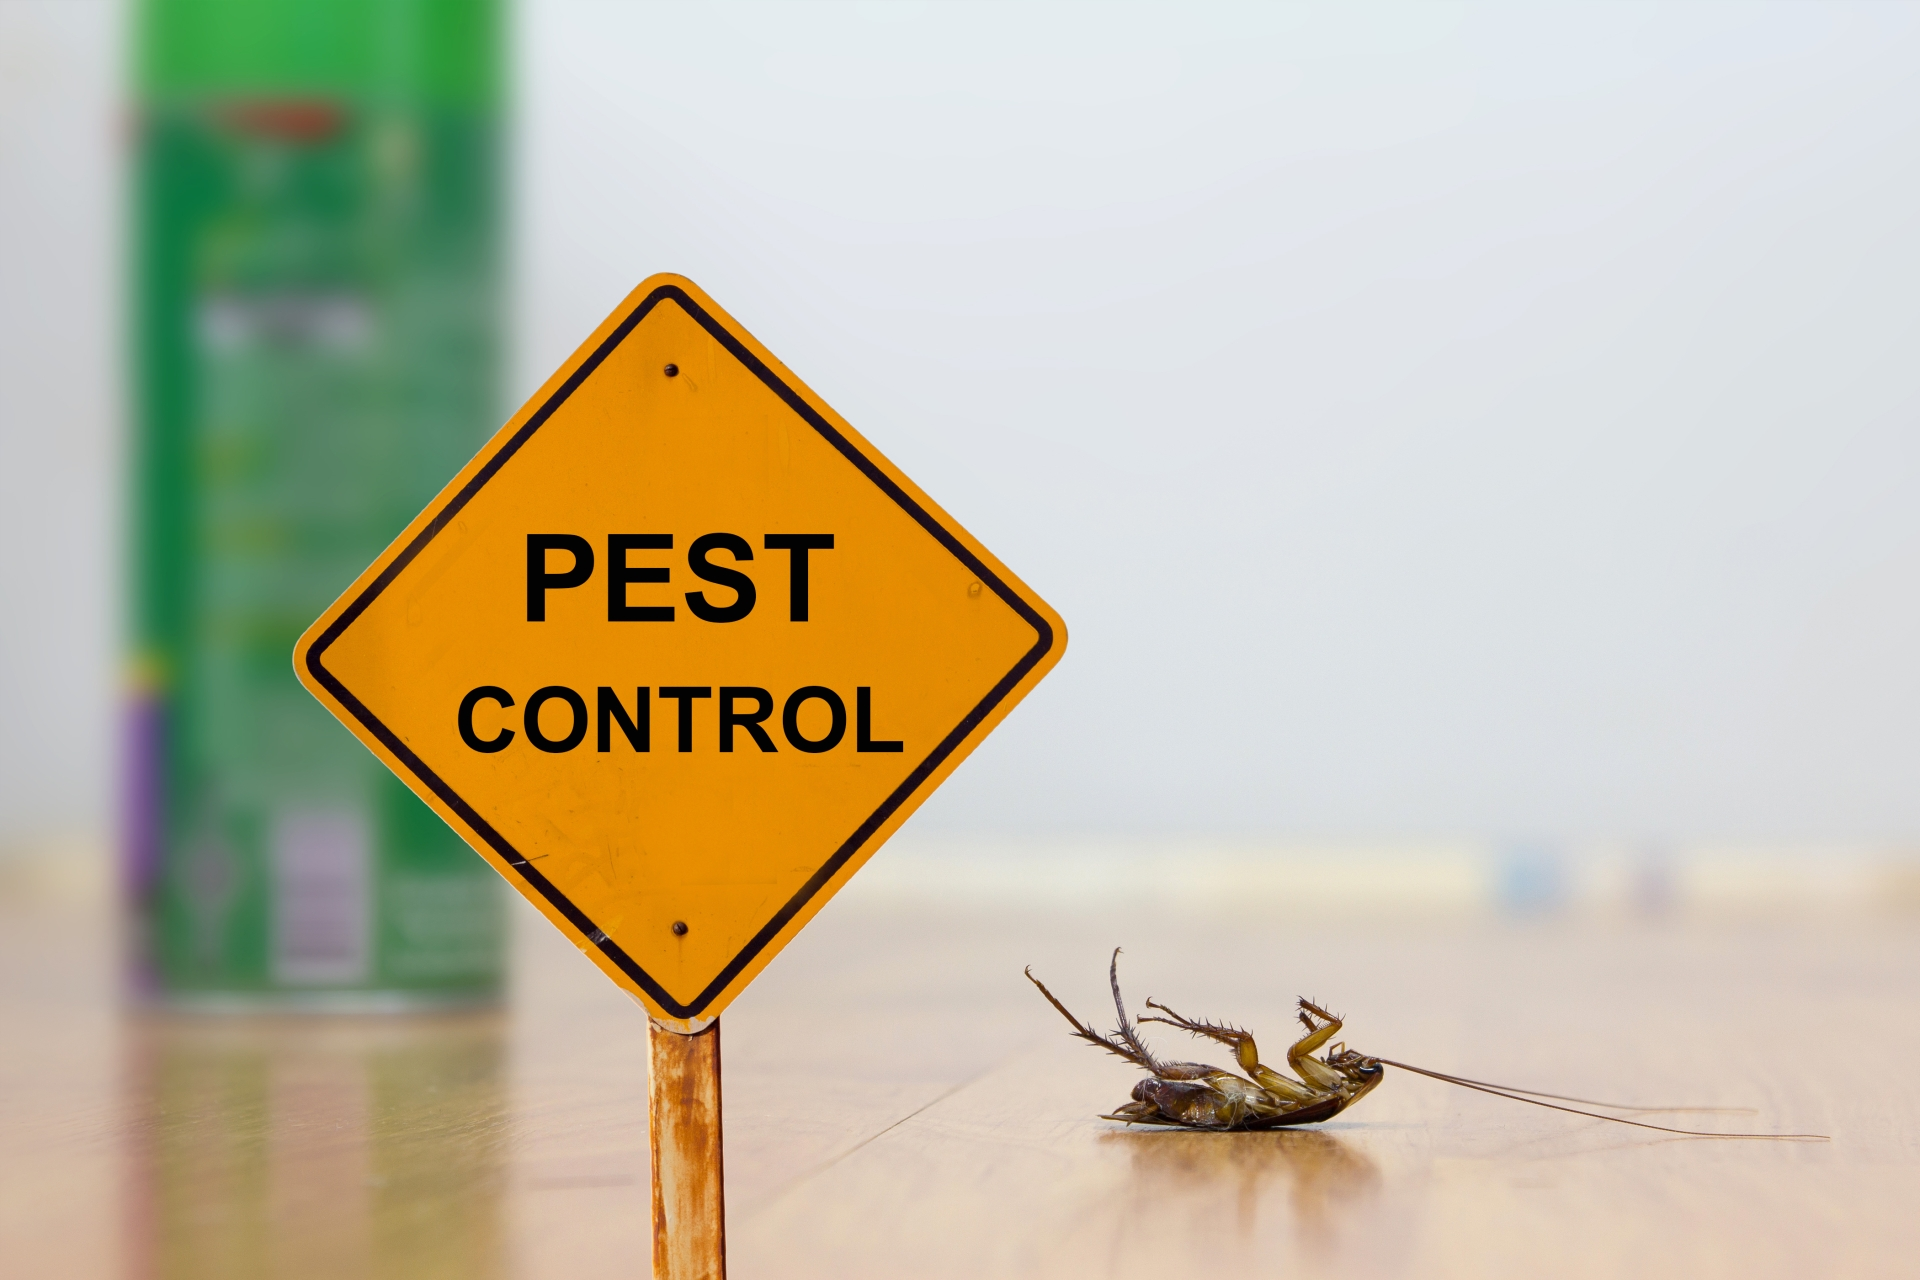 24 Hour Pest Control, Pest Control in North Cheam, Stonecot Hill, SM3. Call Now 020 8166 9746